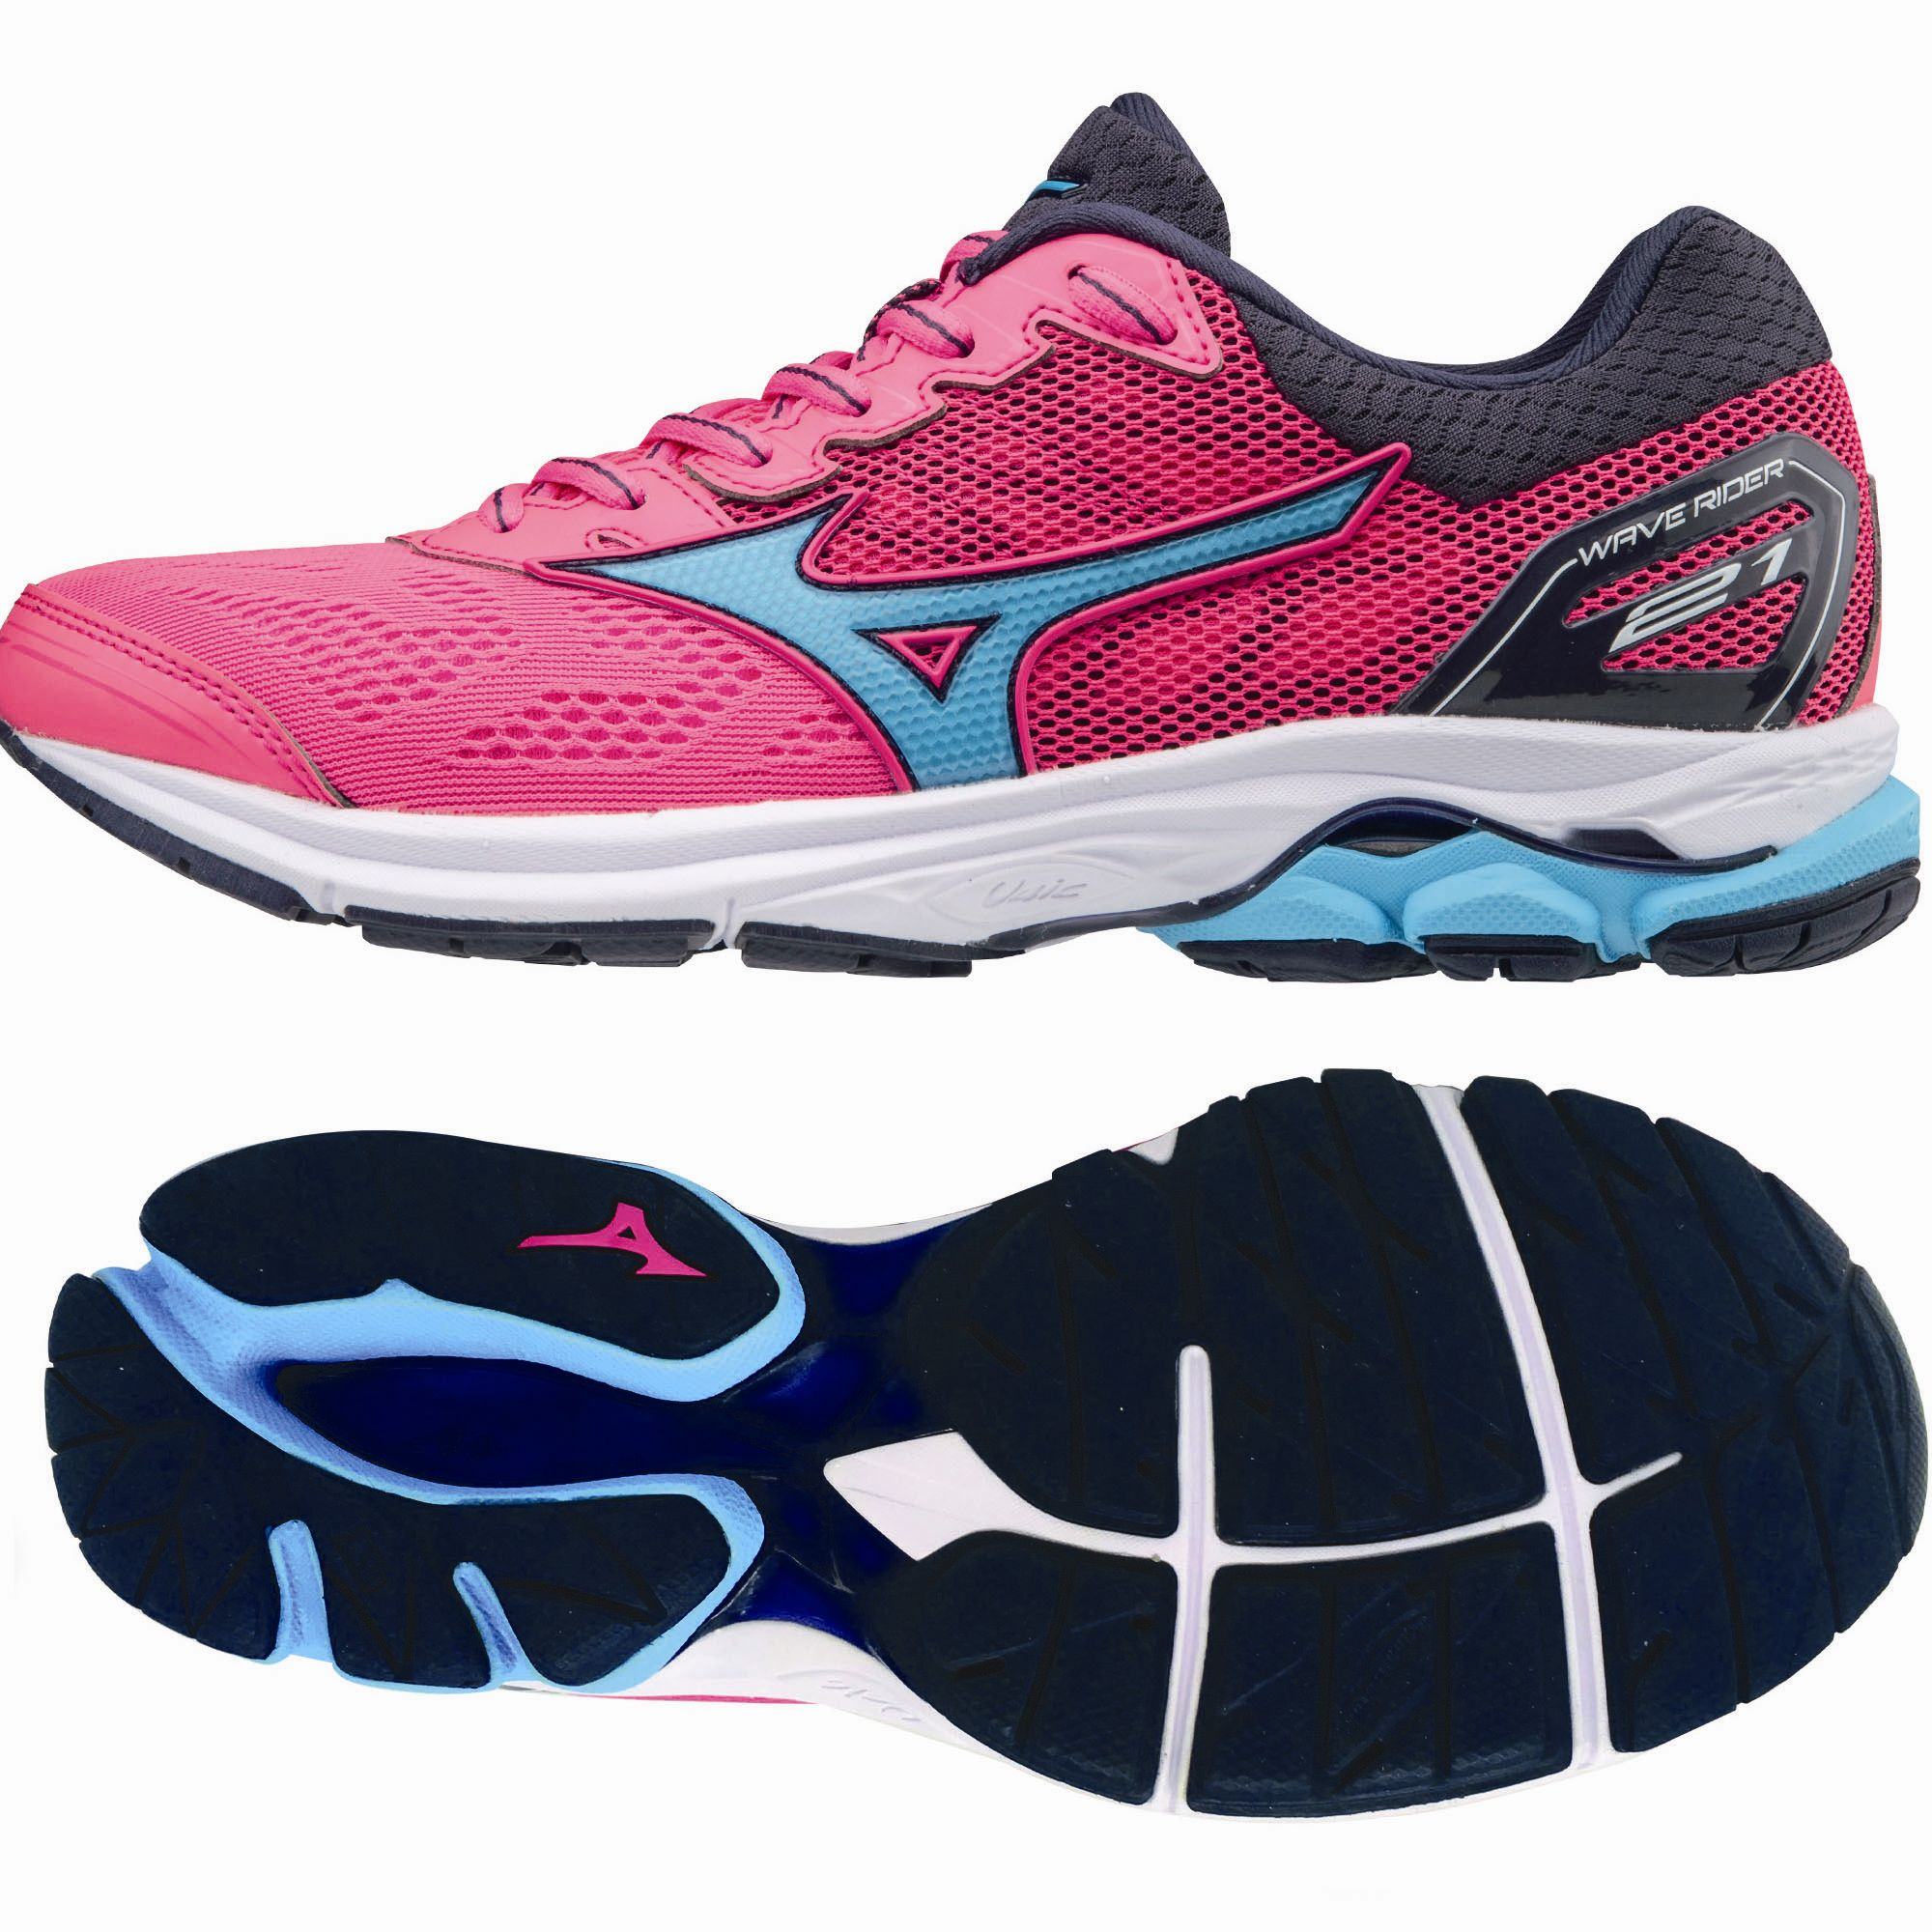 Ladies Table Tennis Shoes